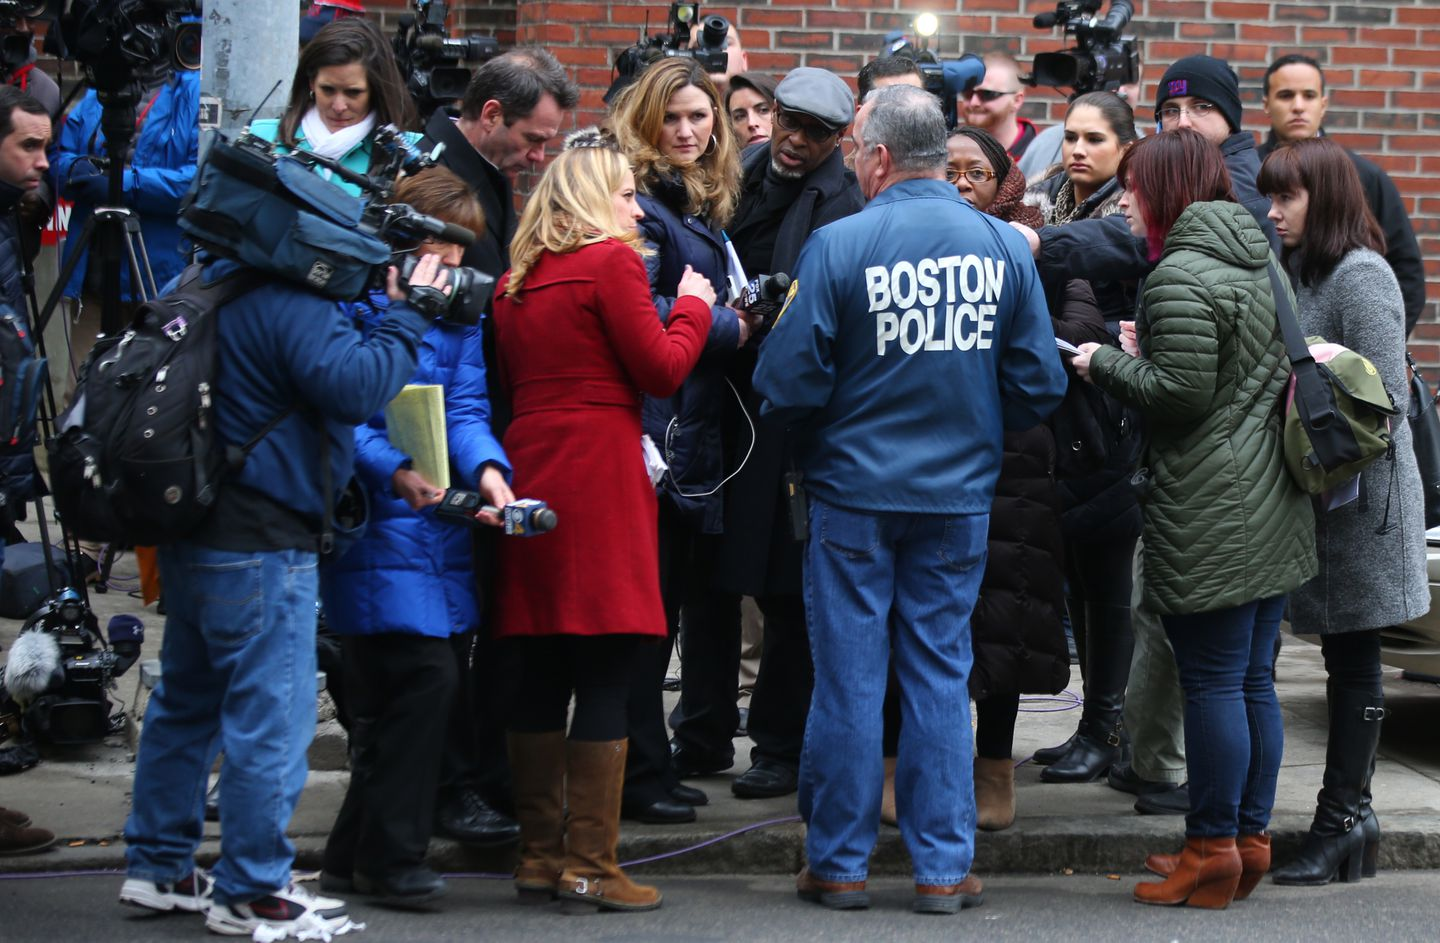 Boston Police Patrolmen's Association President Patrick M. Rose Sr. was surrounded by journalists at a news conference outside of Boston Medical Center following a police shooting in 2015.